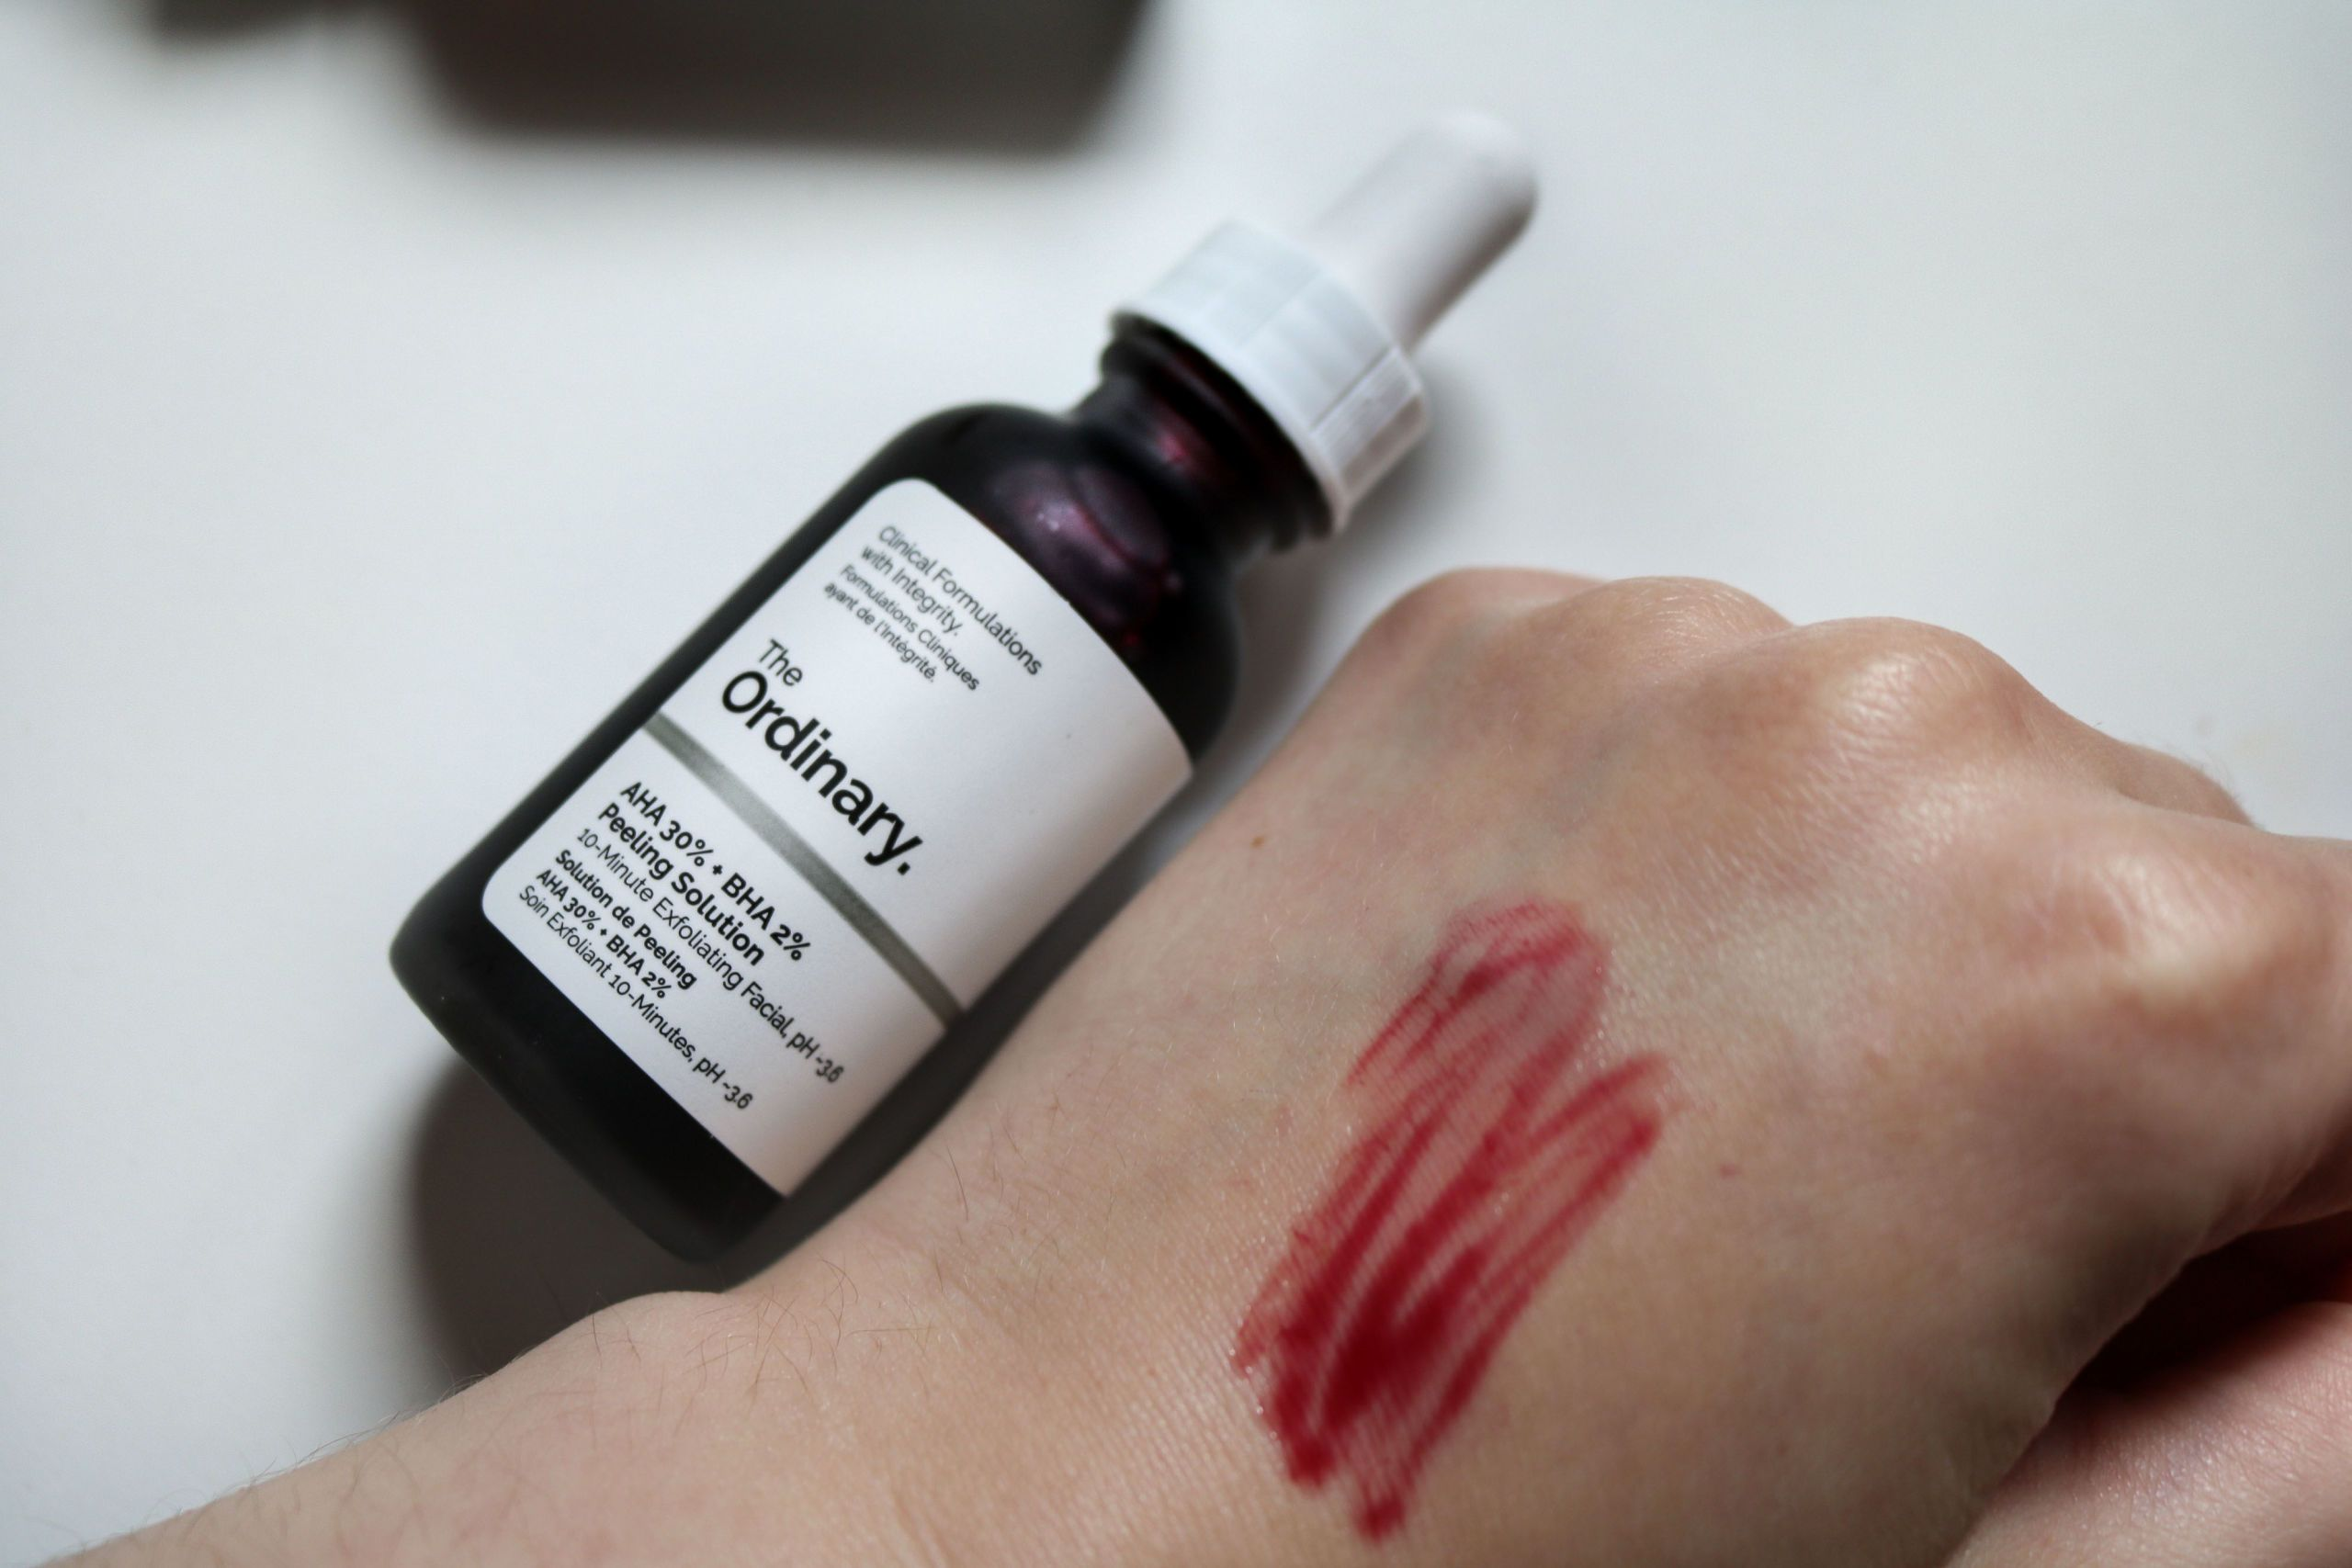 The Ordinary Skincare review Swatch of the AHA BHA mask